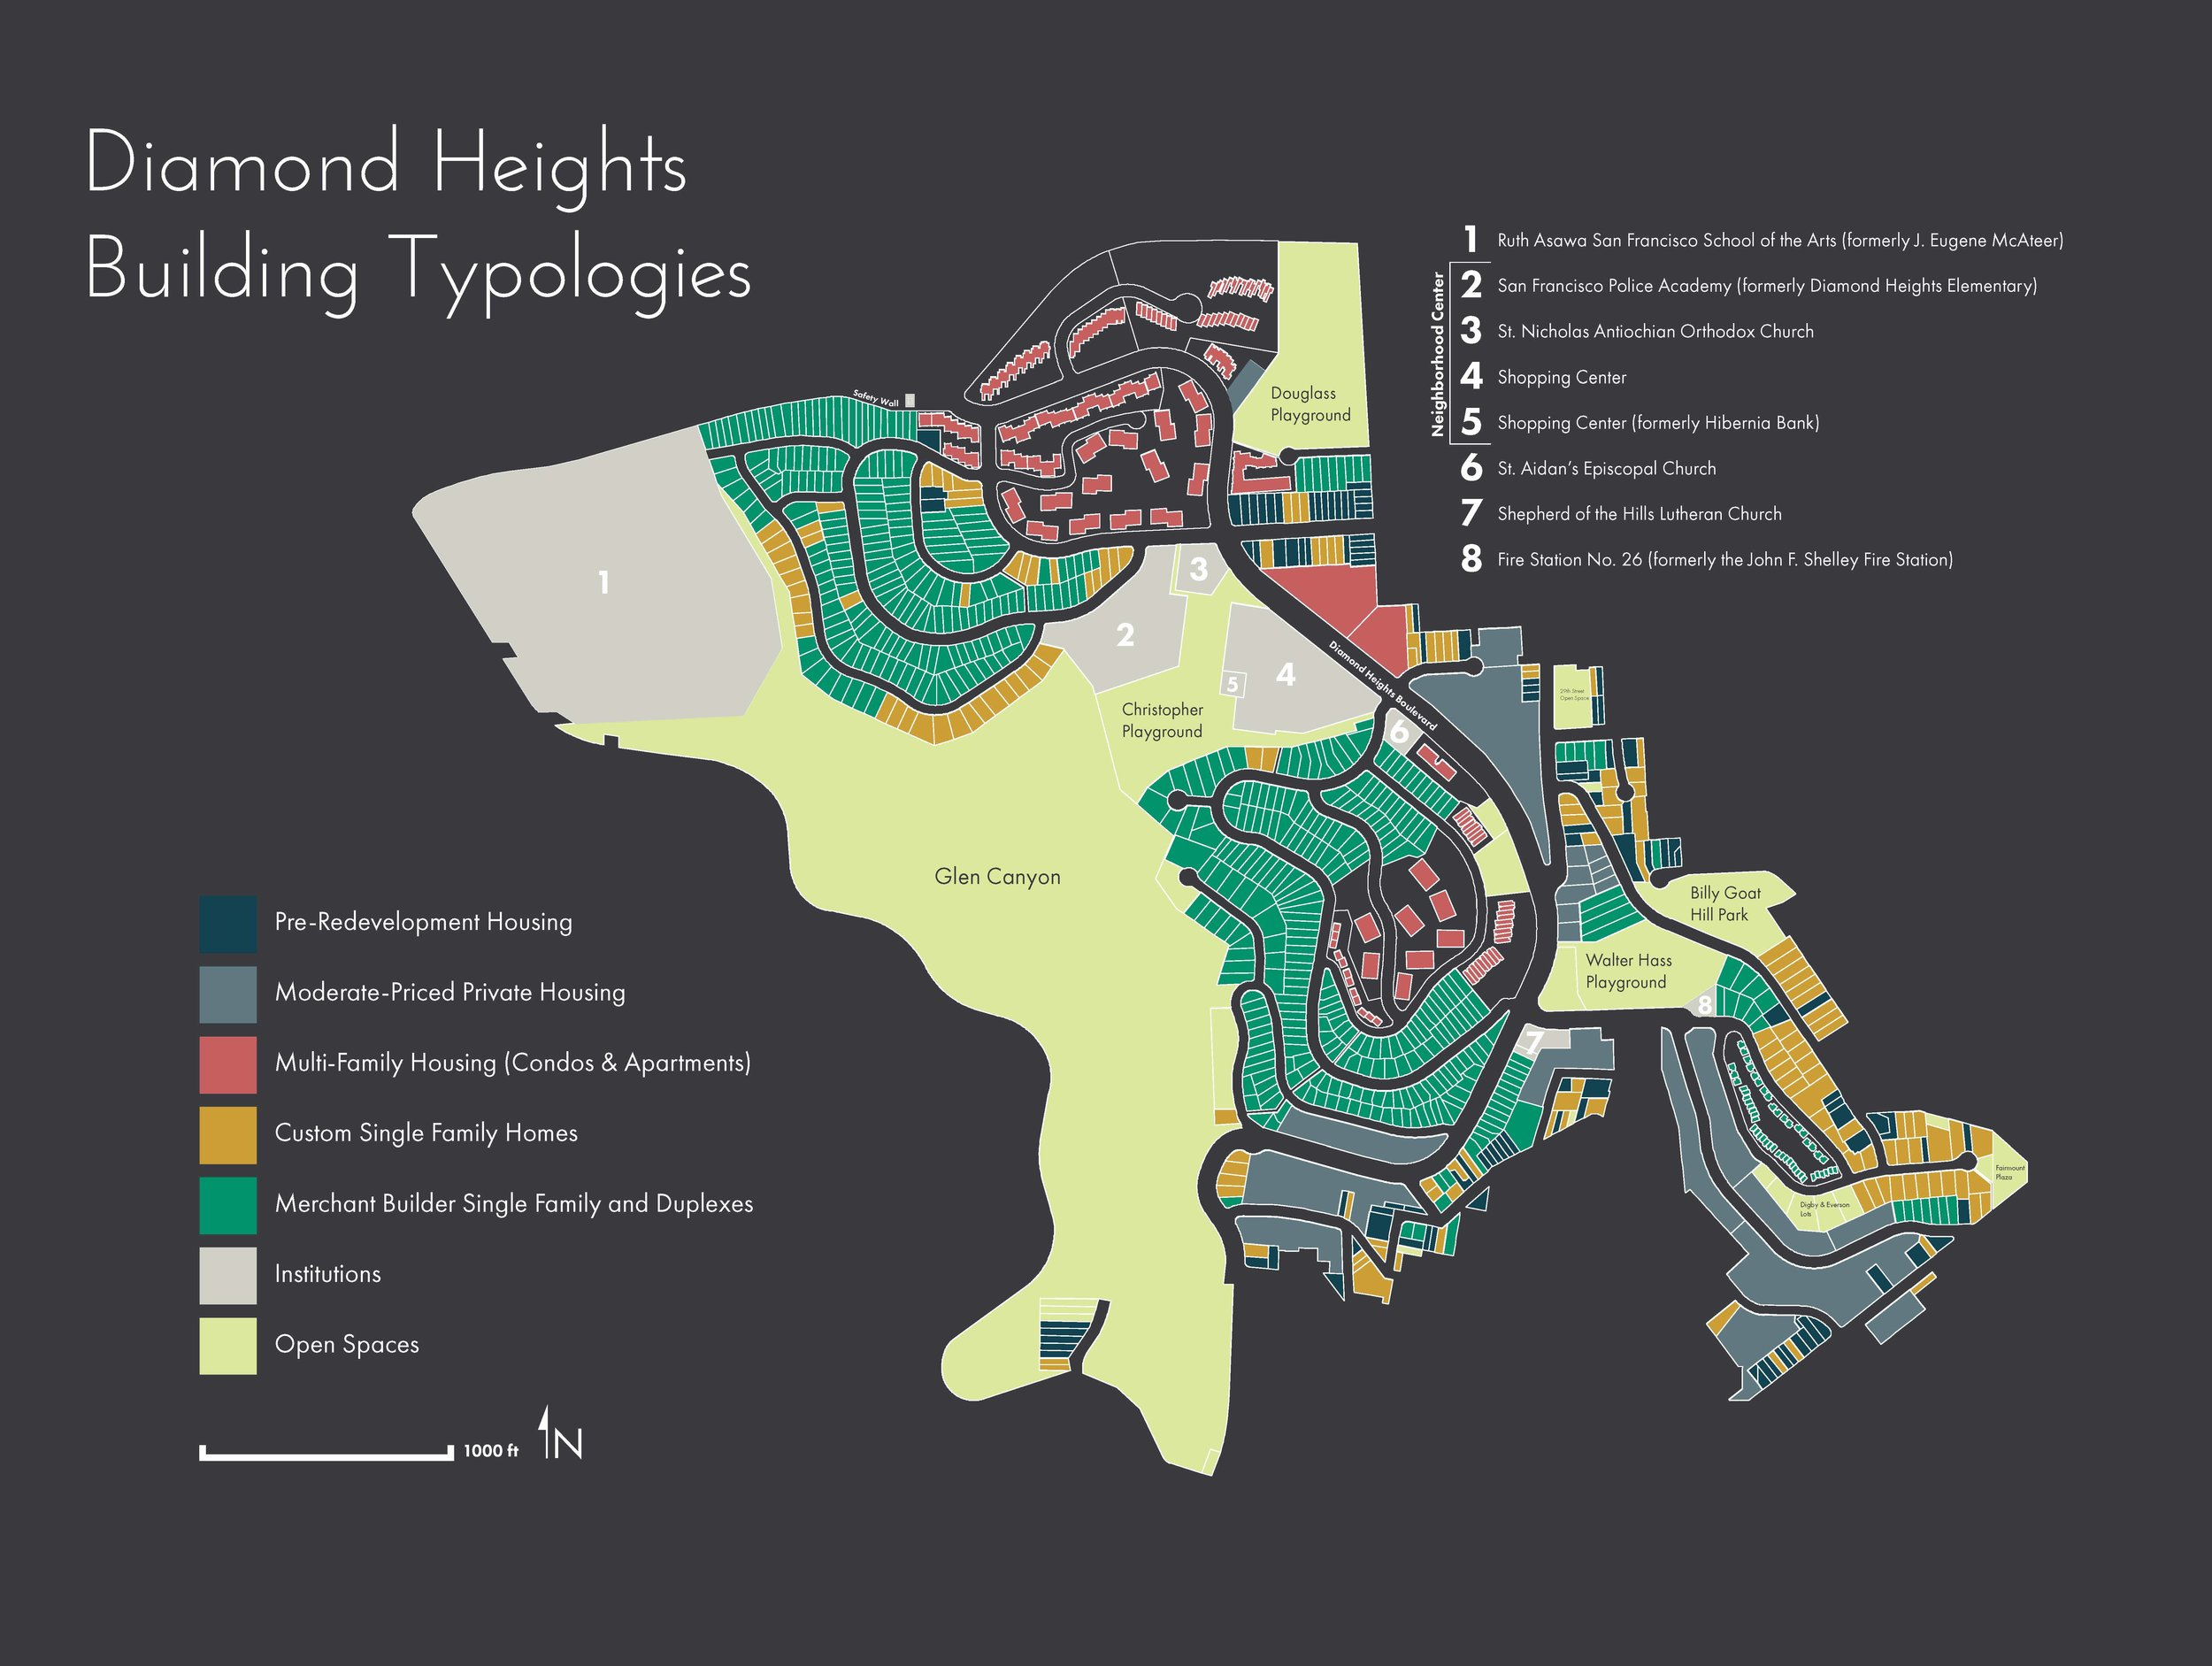 By the official end of the Redevelopment Agency project in 1979, the population in Diamond Heights had increased from 374 to 7,300 and 2,265 new housing units had been built in the 325 acre project area. [Map by Hannah Simonson]